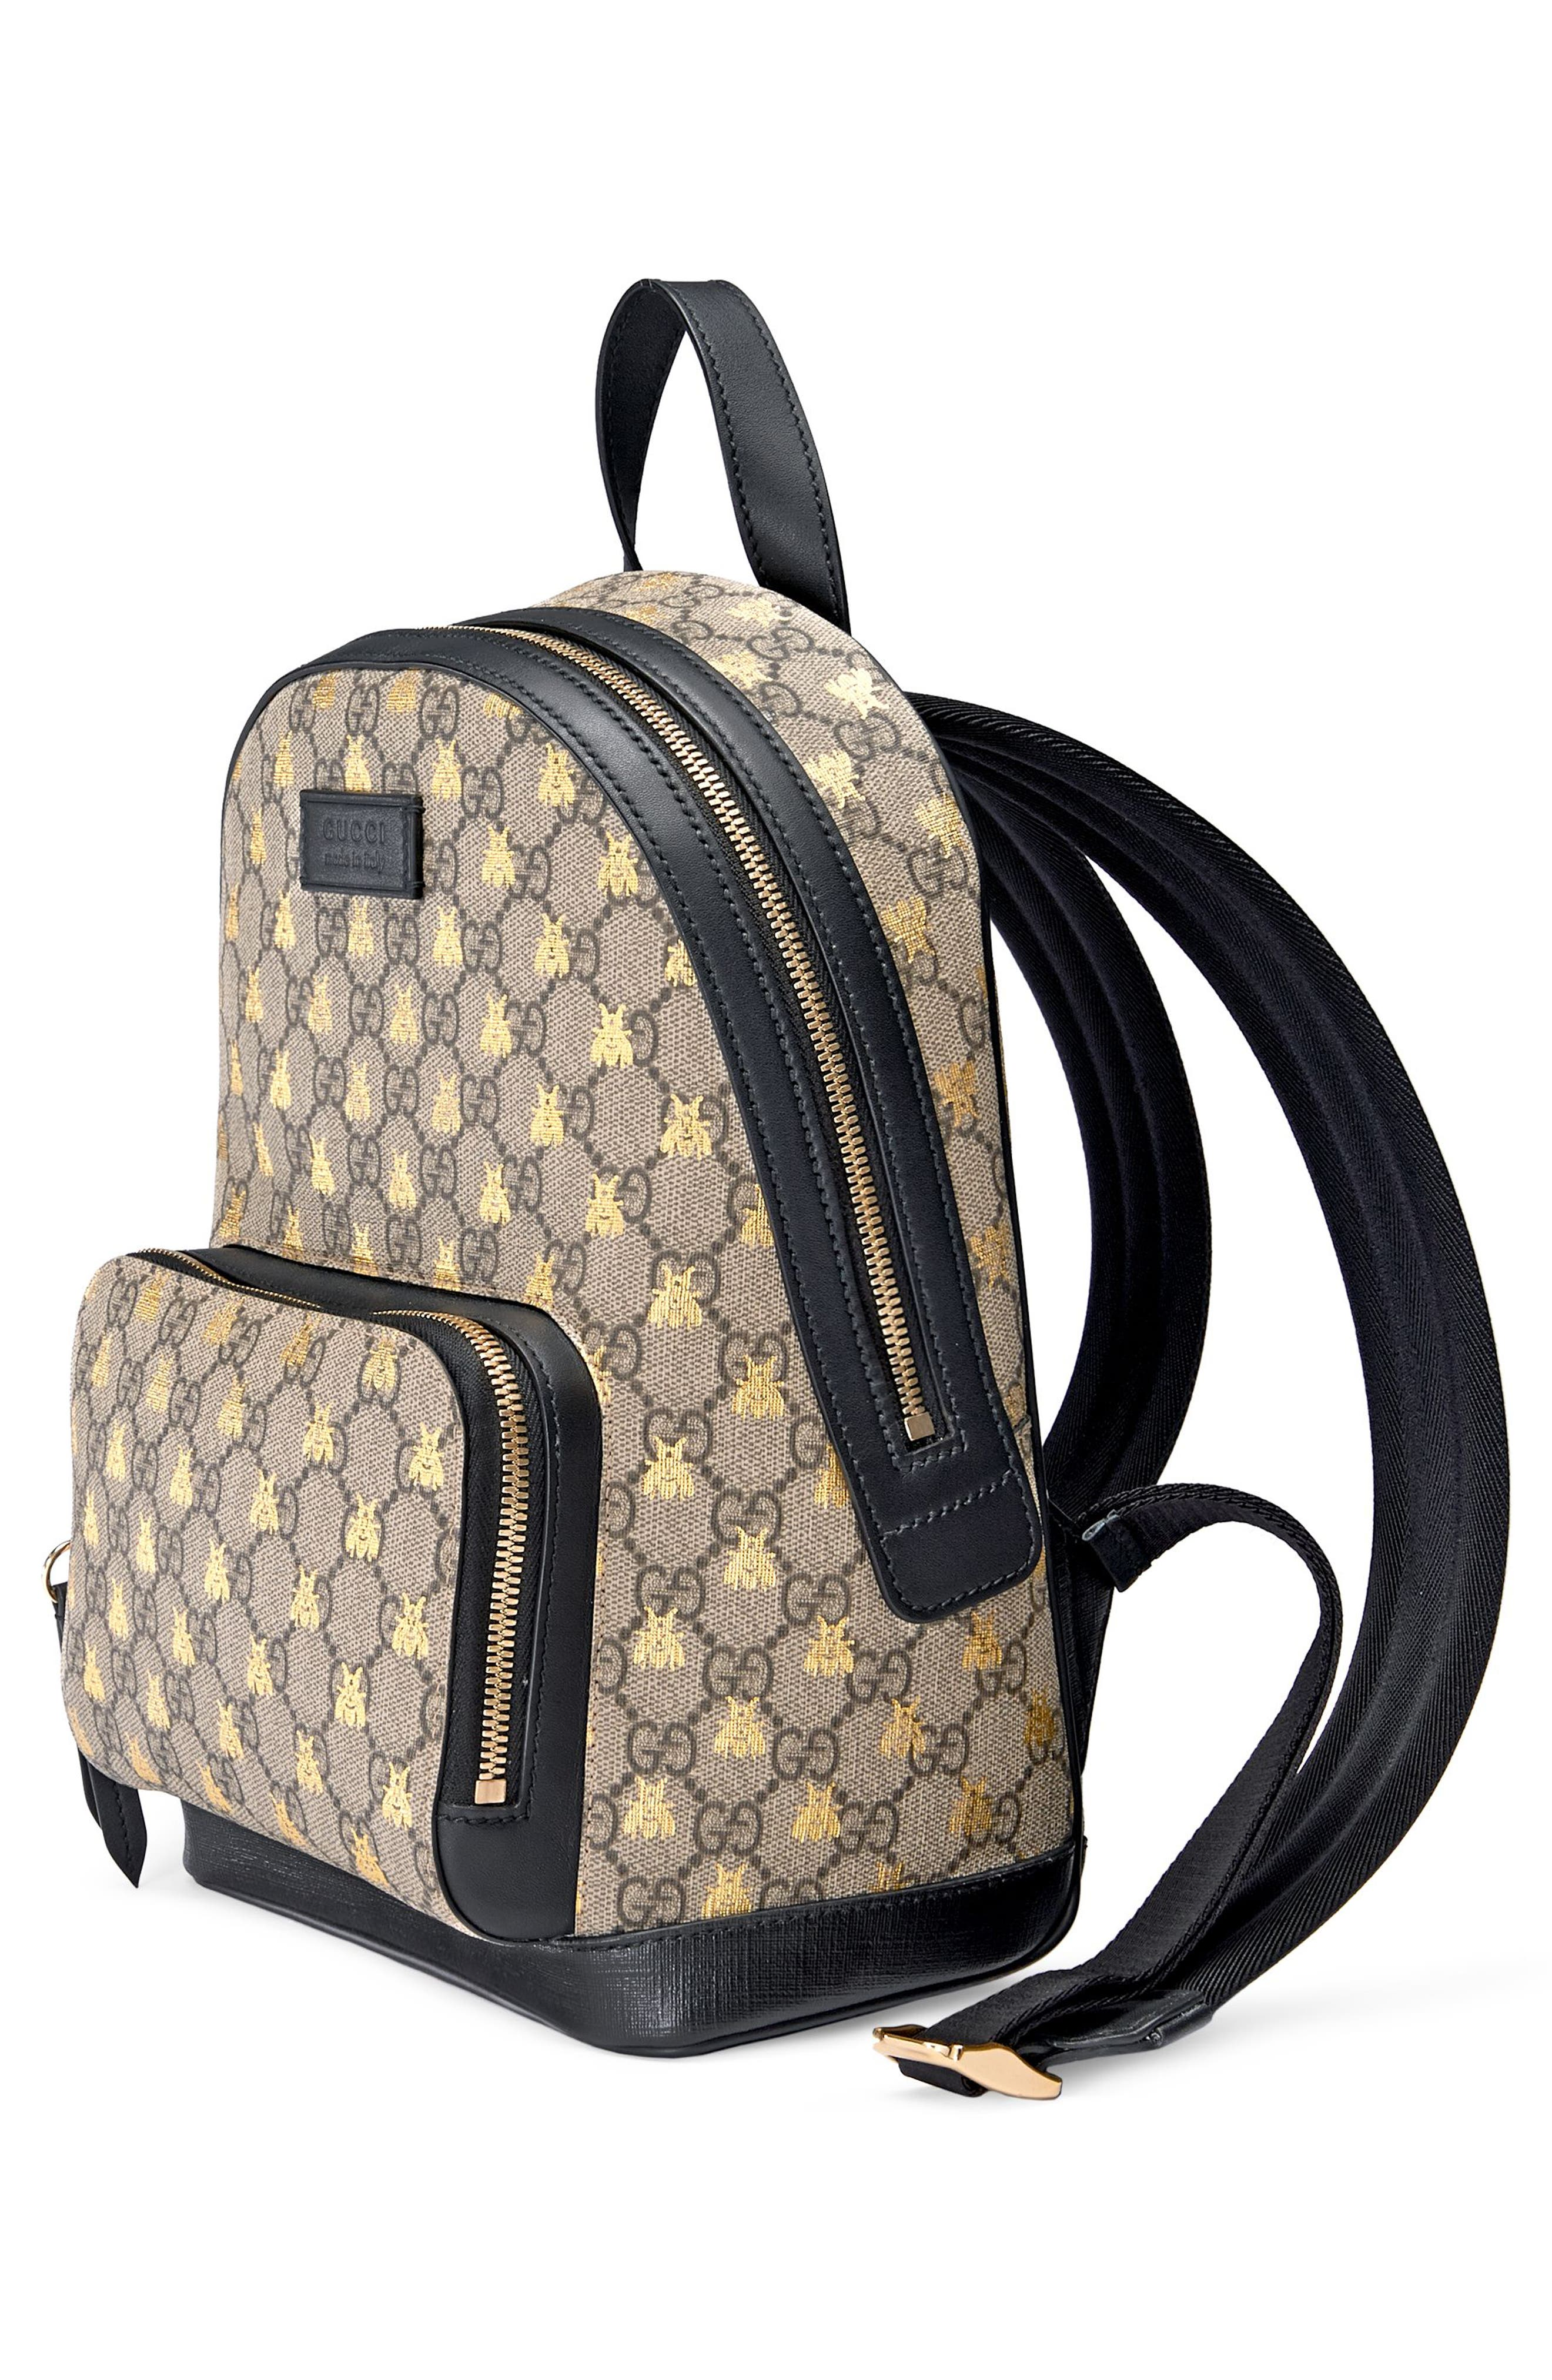 GUCCI, Bee GG Supreme Canvas Backpack, Alternate thumbnail 4, color, 250